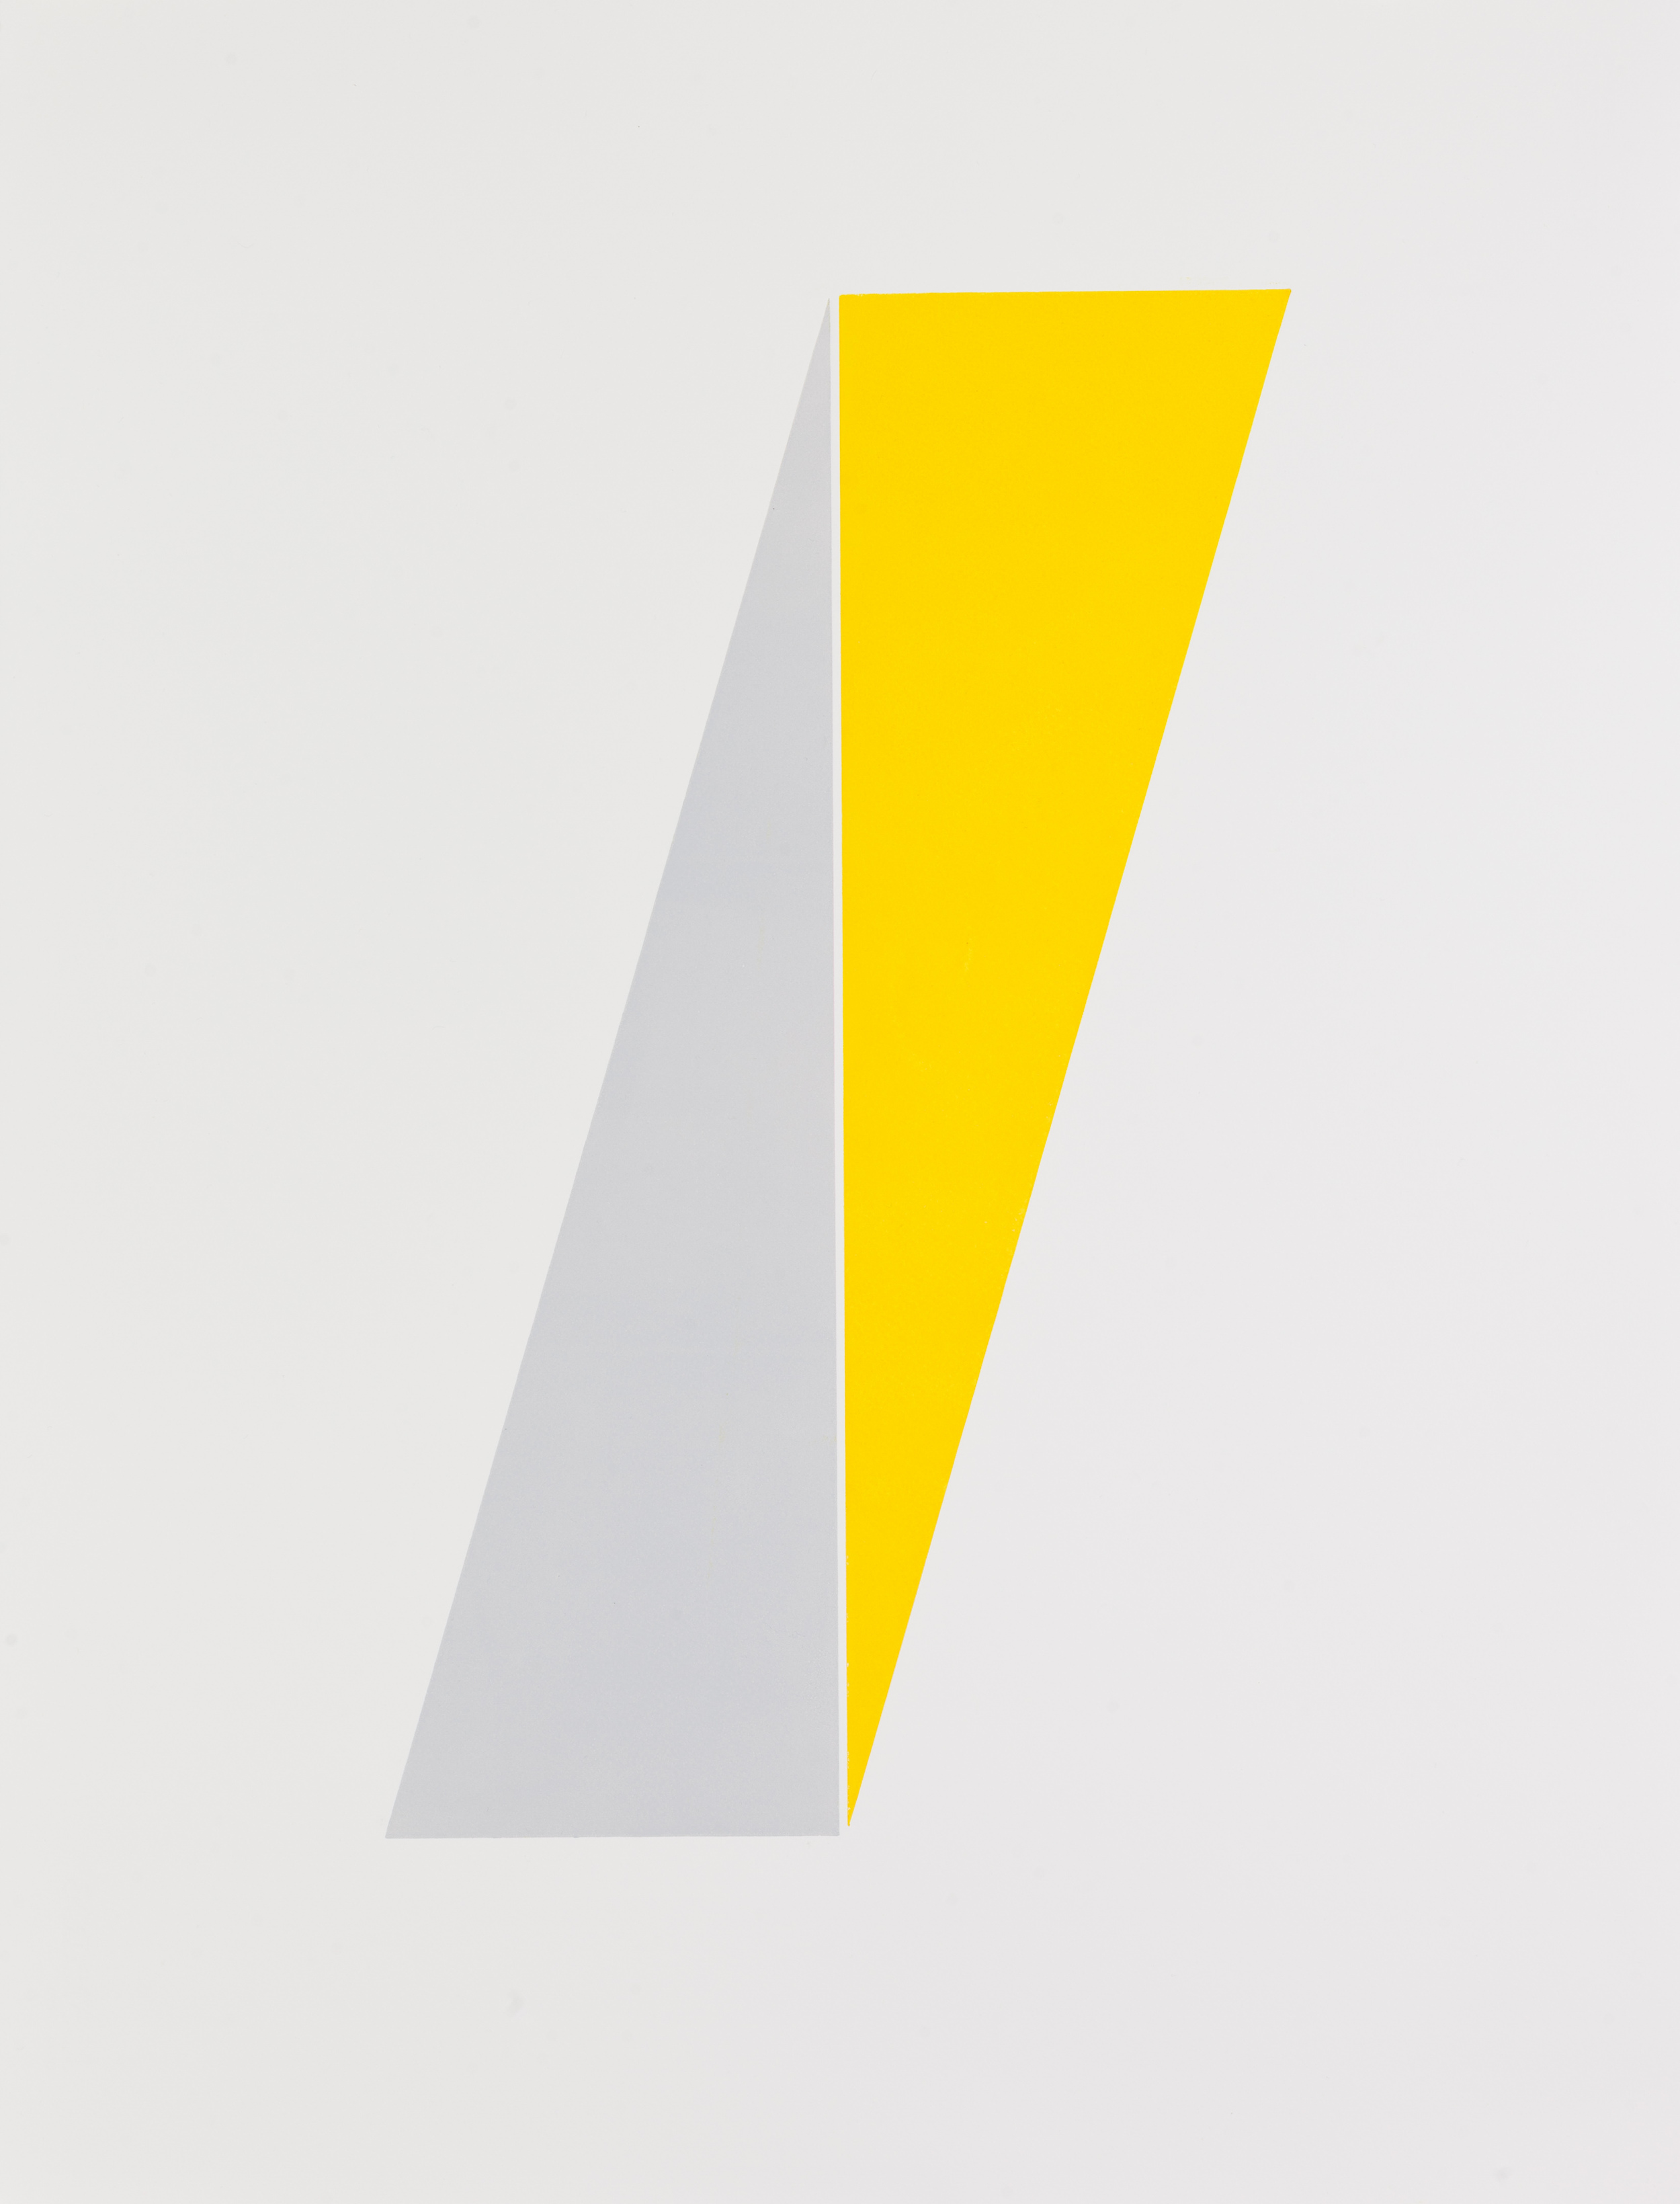 Henry Garfit   Yellow and Steel Grey Composition   Relief print with reclaimed aluminium   76cm x 57cm   Edition of 10   £595 framed